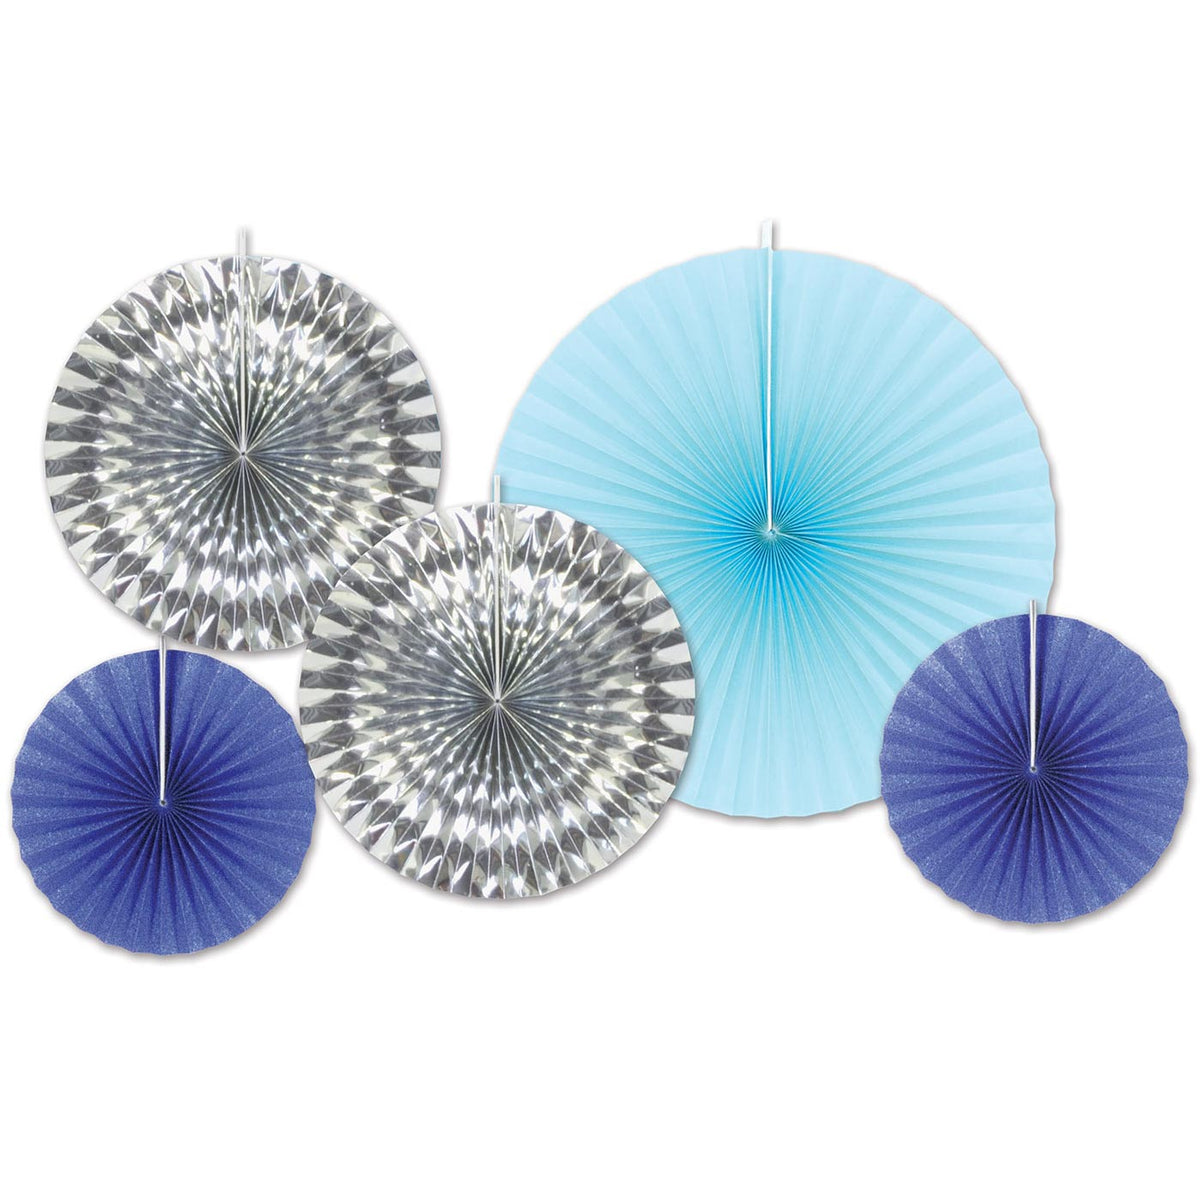 Blue & Silver Accordion Paper Fans